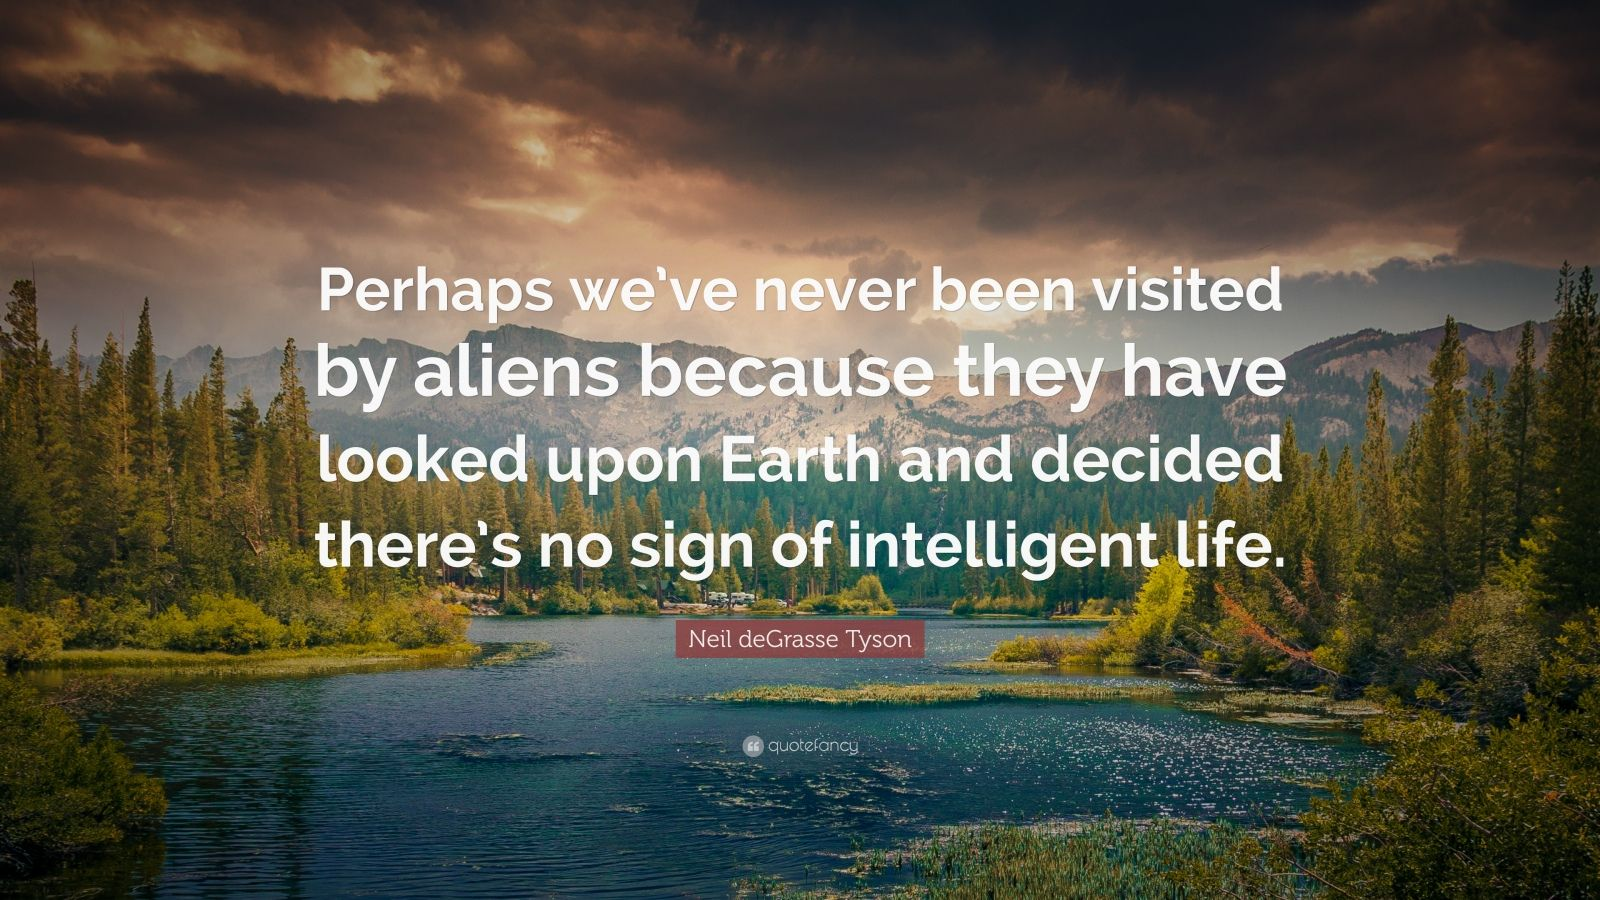 """Neil deGrasse Tyson Quote: """"Perhaps we've never been visited by aliens because they have looked upon Earth and decided there's no sign of intelligent life."""""""